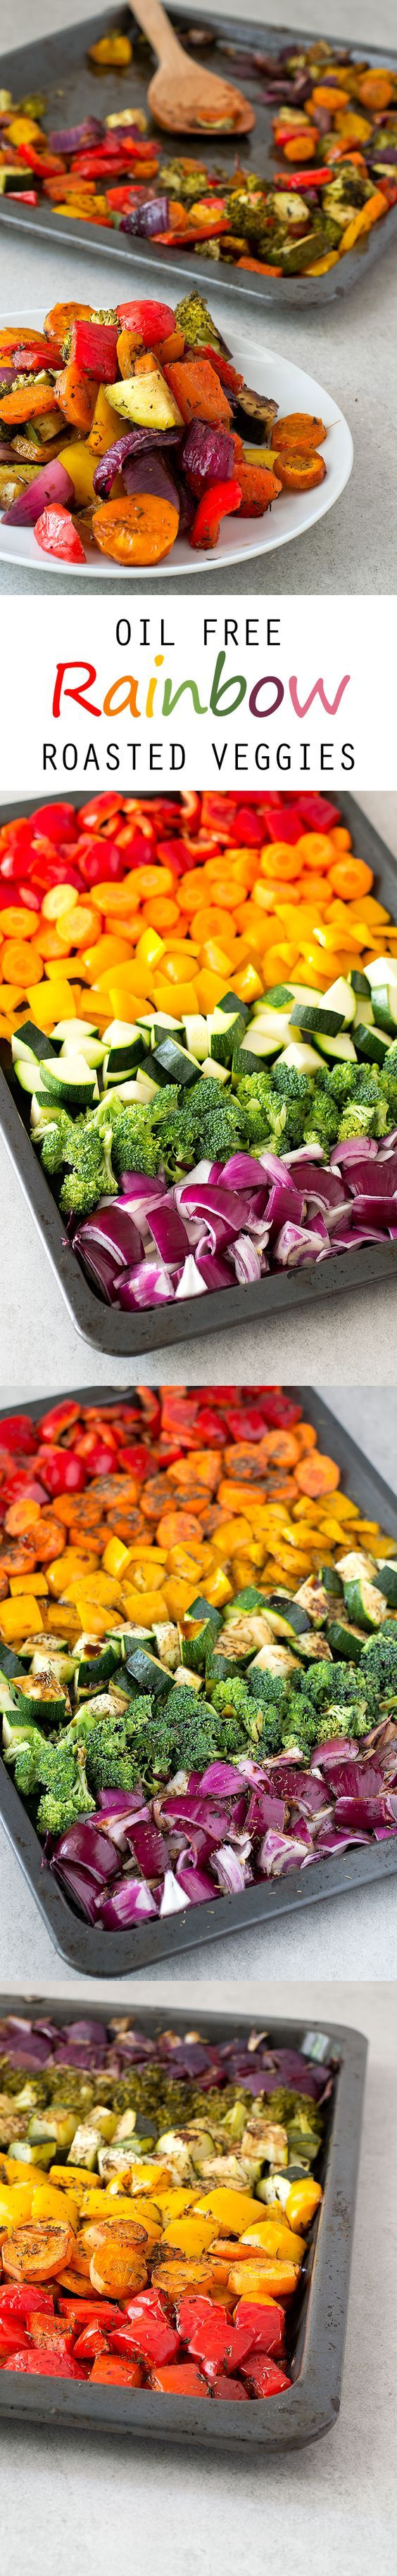 Oil Free Rainbow Roasted Vegetables #vegan #glutenfree: | https://lomejordelaweb.es/